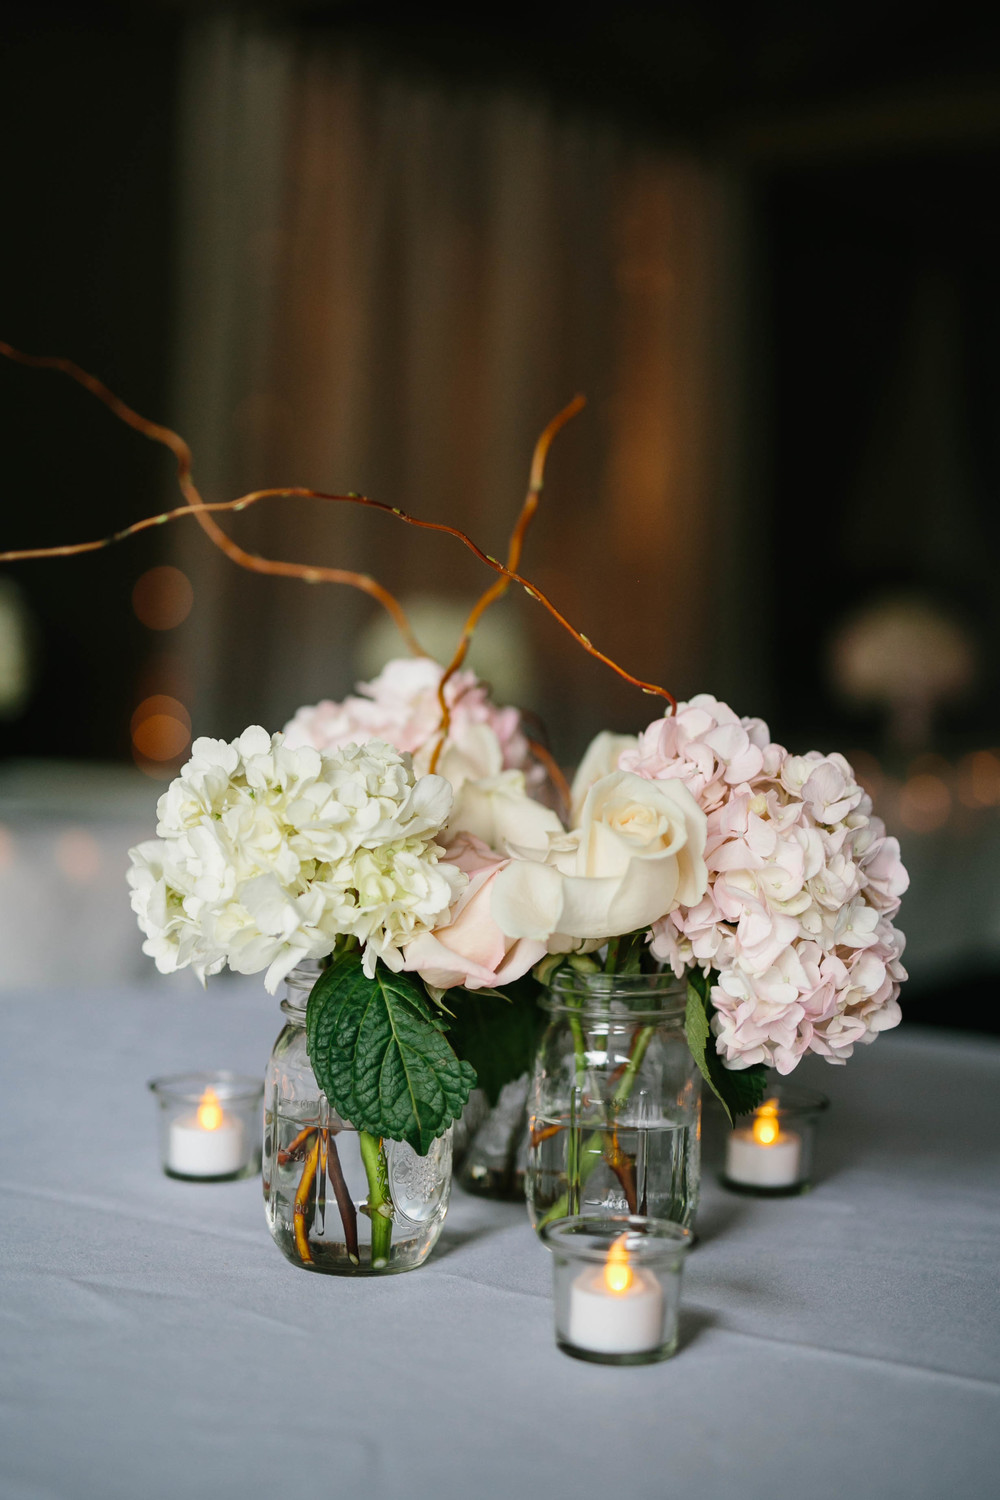 Photo by Melissa Kilner Photography, Flowers provided by Metropolitan Market